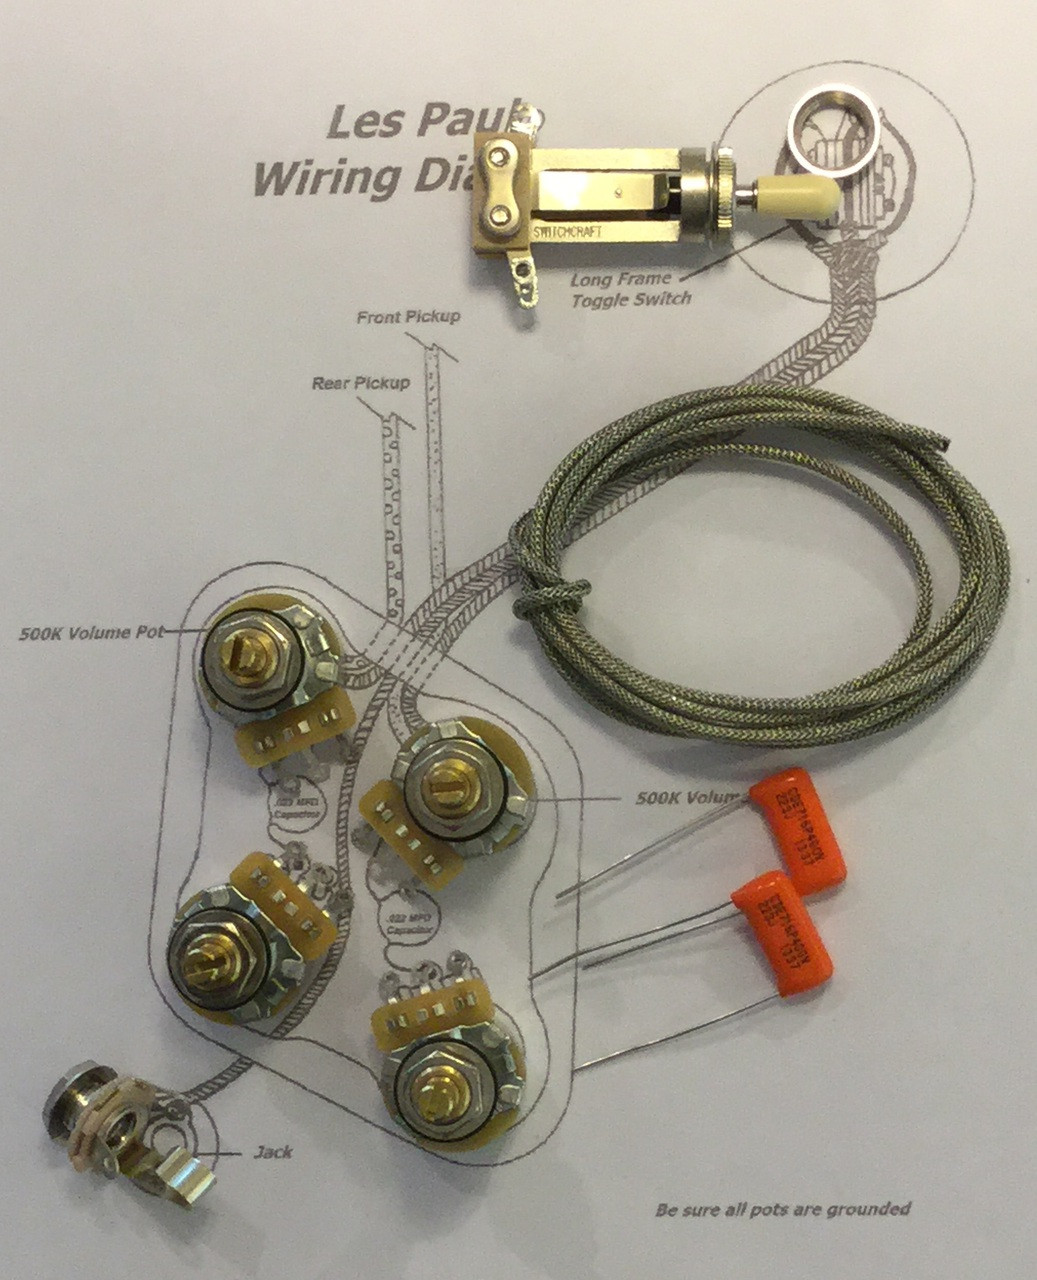 wiring kit gibson les paul long shaft cts taot 500kxl pots les paul wiring diagram 50 s les paul wiring kit [ 1037 x 1280 Pixel ]